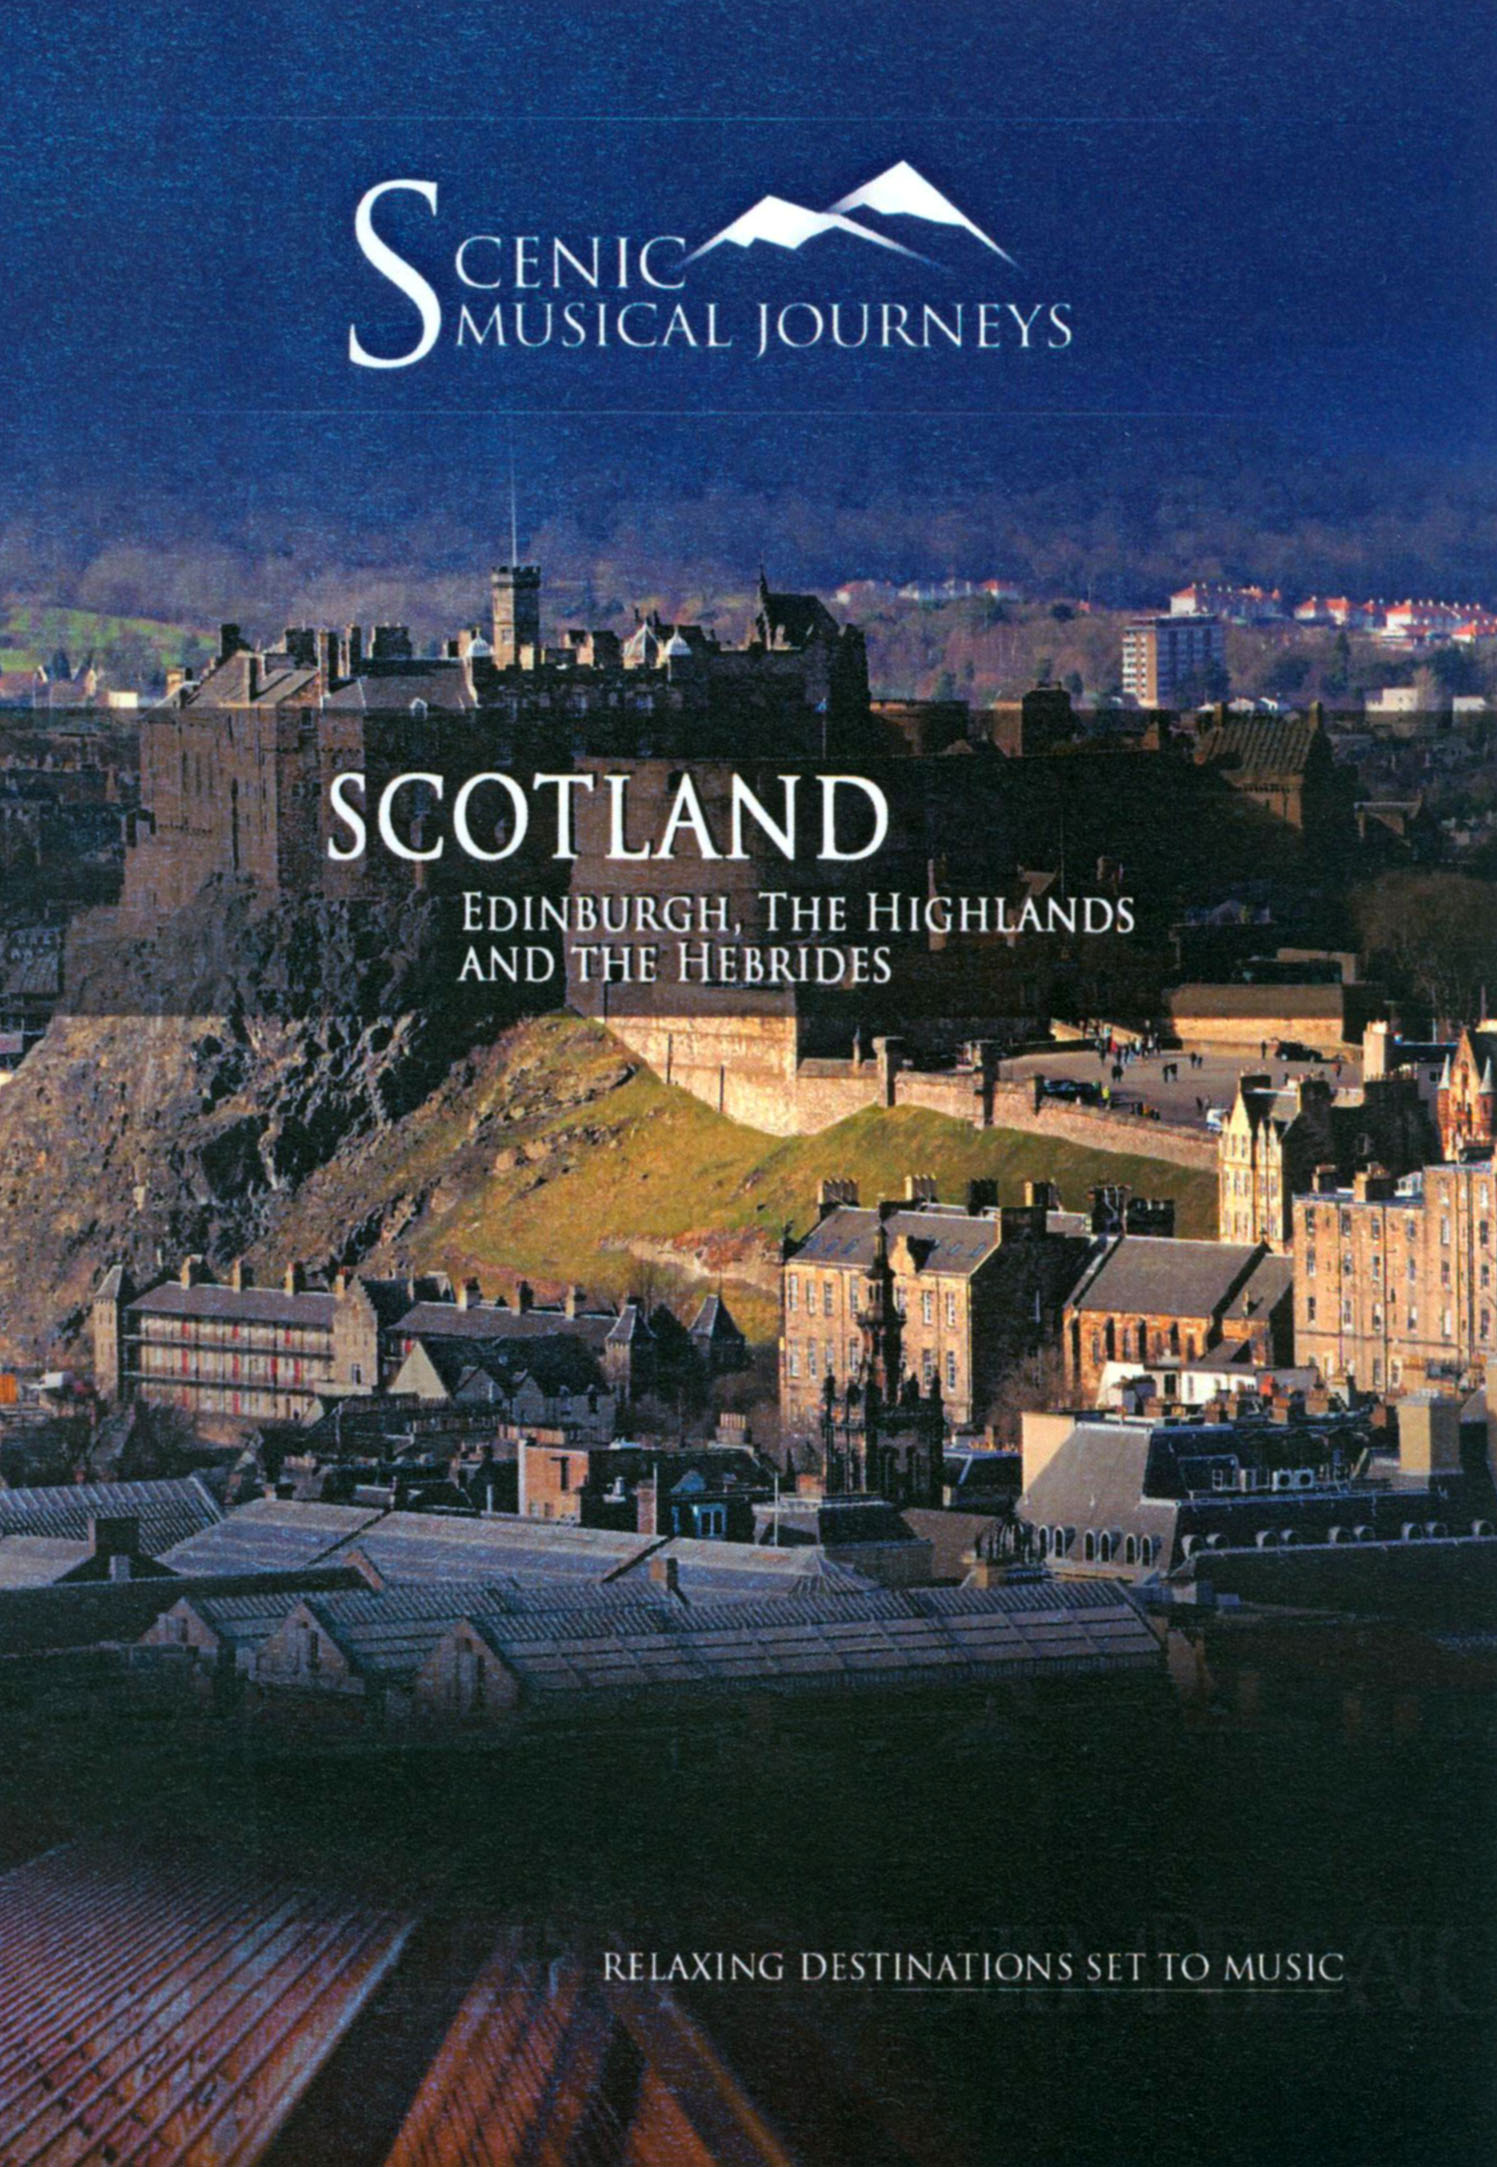 Scenic Musical Journeys: Scotland - Edinburgh, The Highlands and the Hebrides